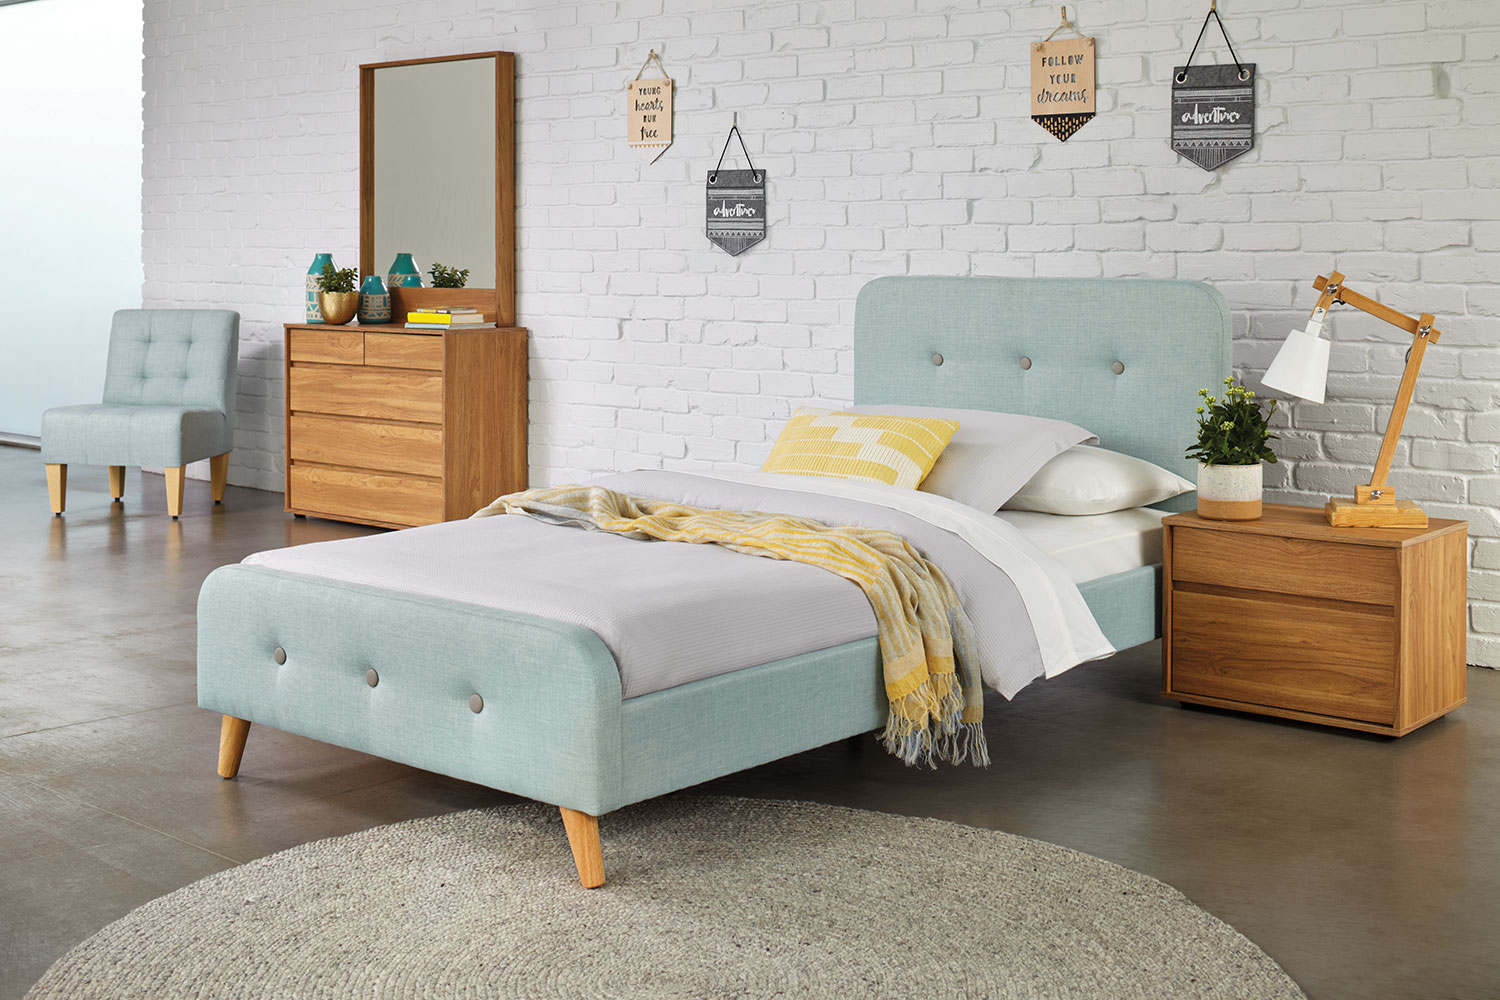 Super King Bed Frames Australia Calypso King Single Bed Frame By Nero Furniture Harvey